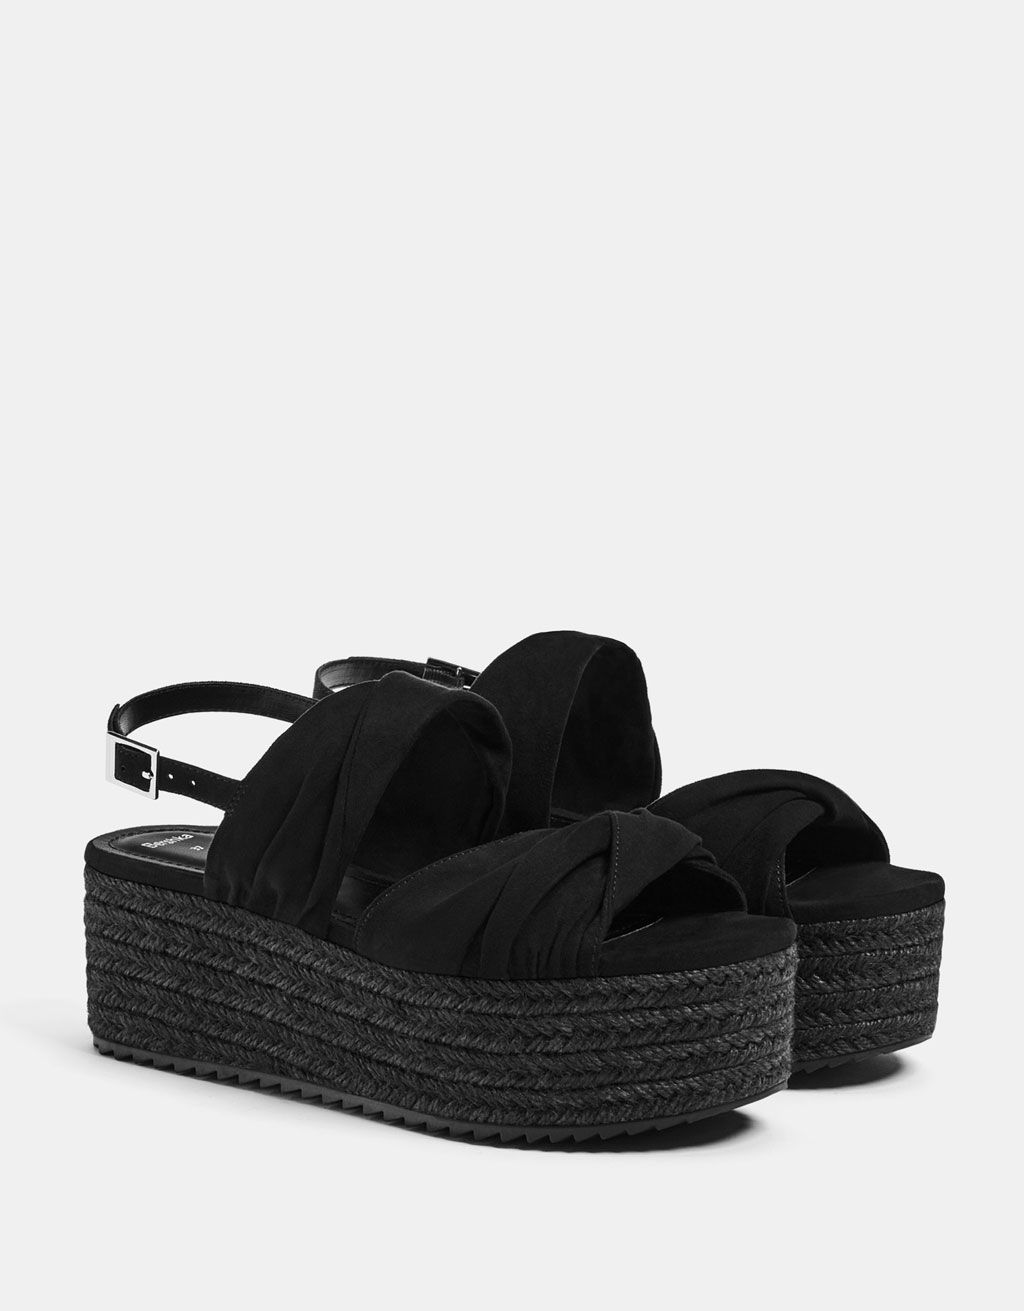 6990e5fc6 Black jute platform sandals in 2019 | shoes | Sandals, Shoes, Black ...